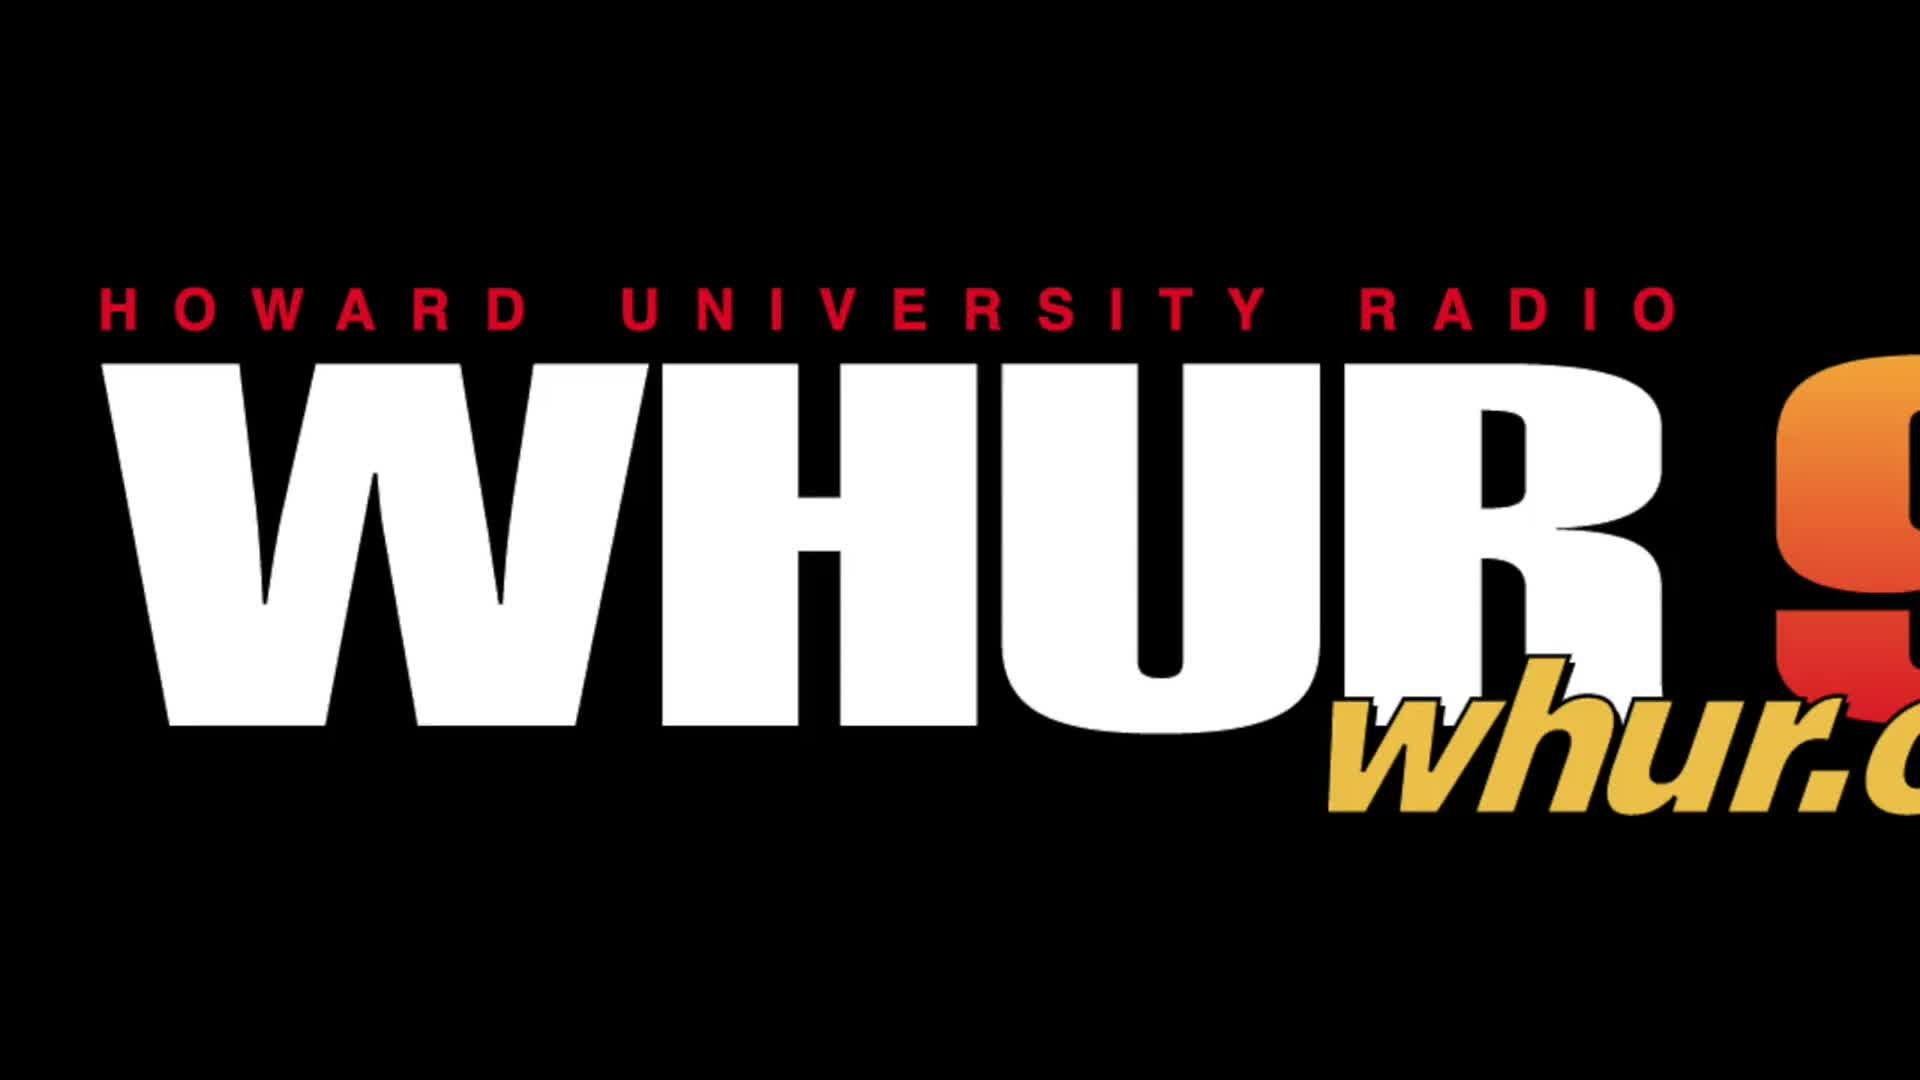 whur 96 3 fm washington dc s original urban a c radio station